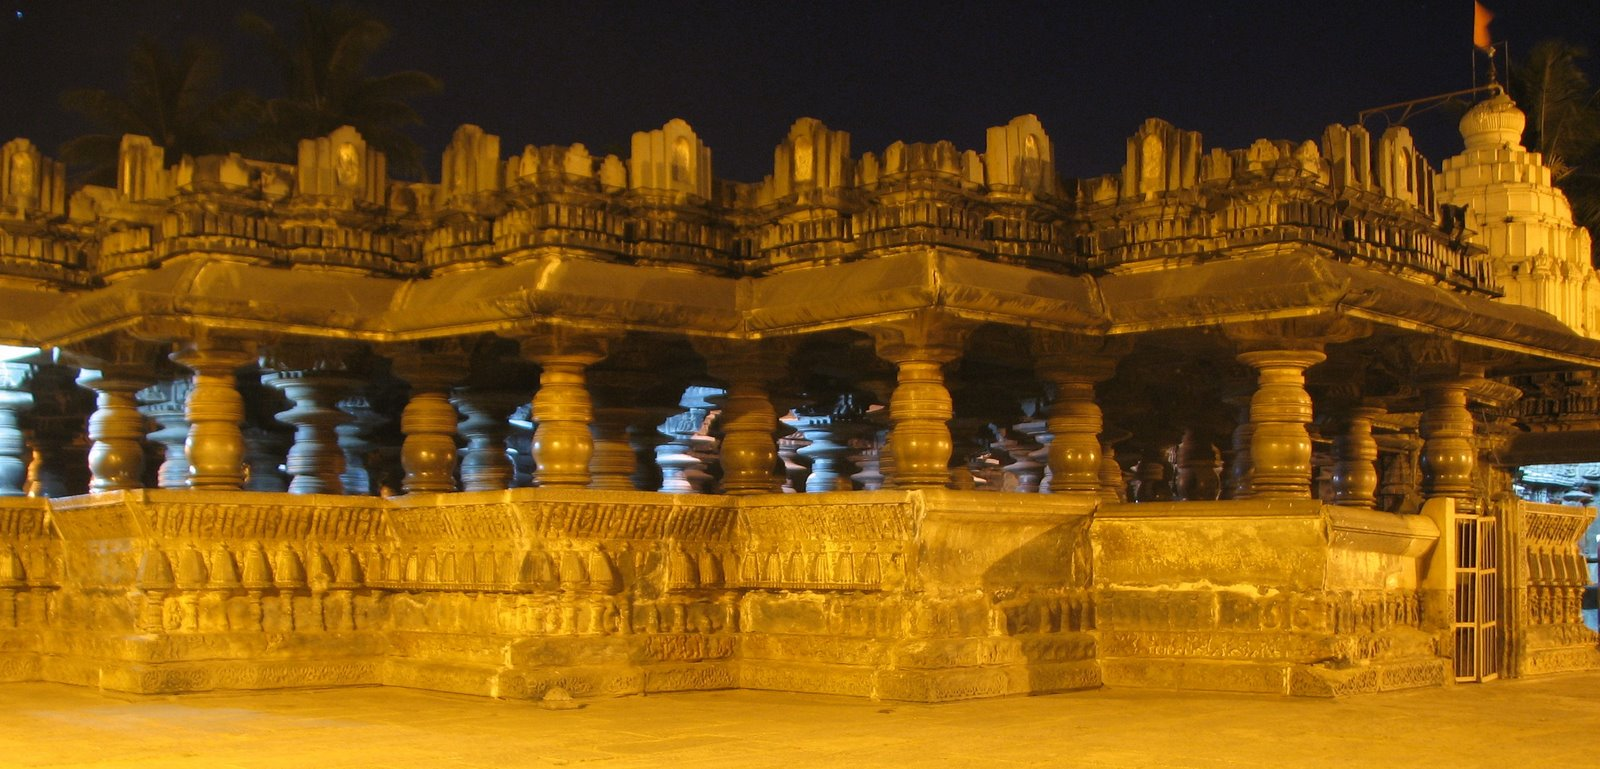 Harihareshwara Temple at Harihar, Davanagere